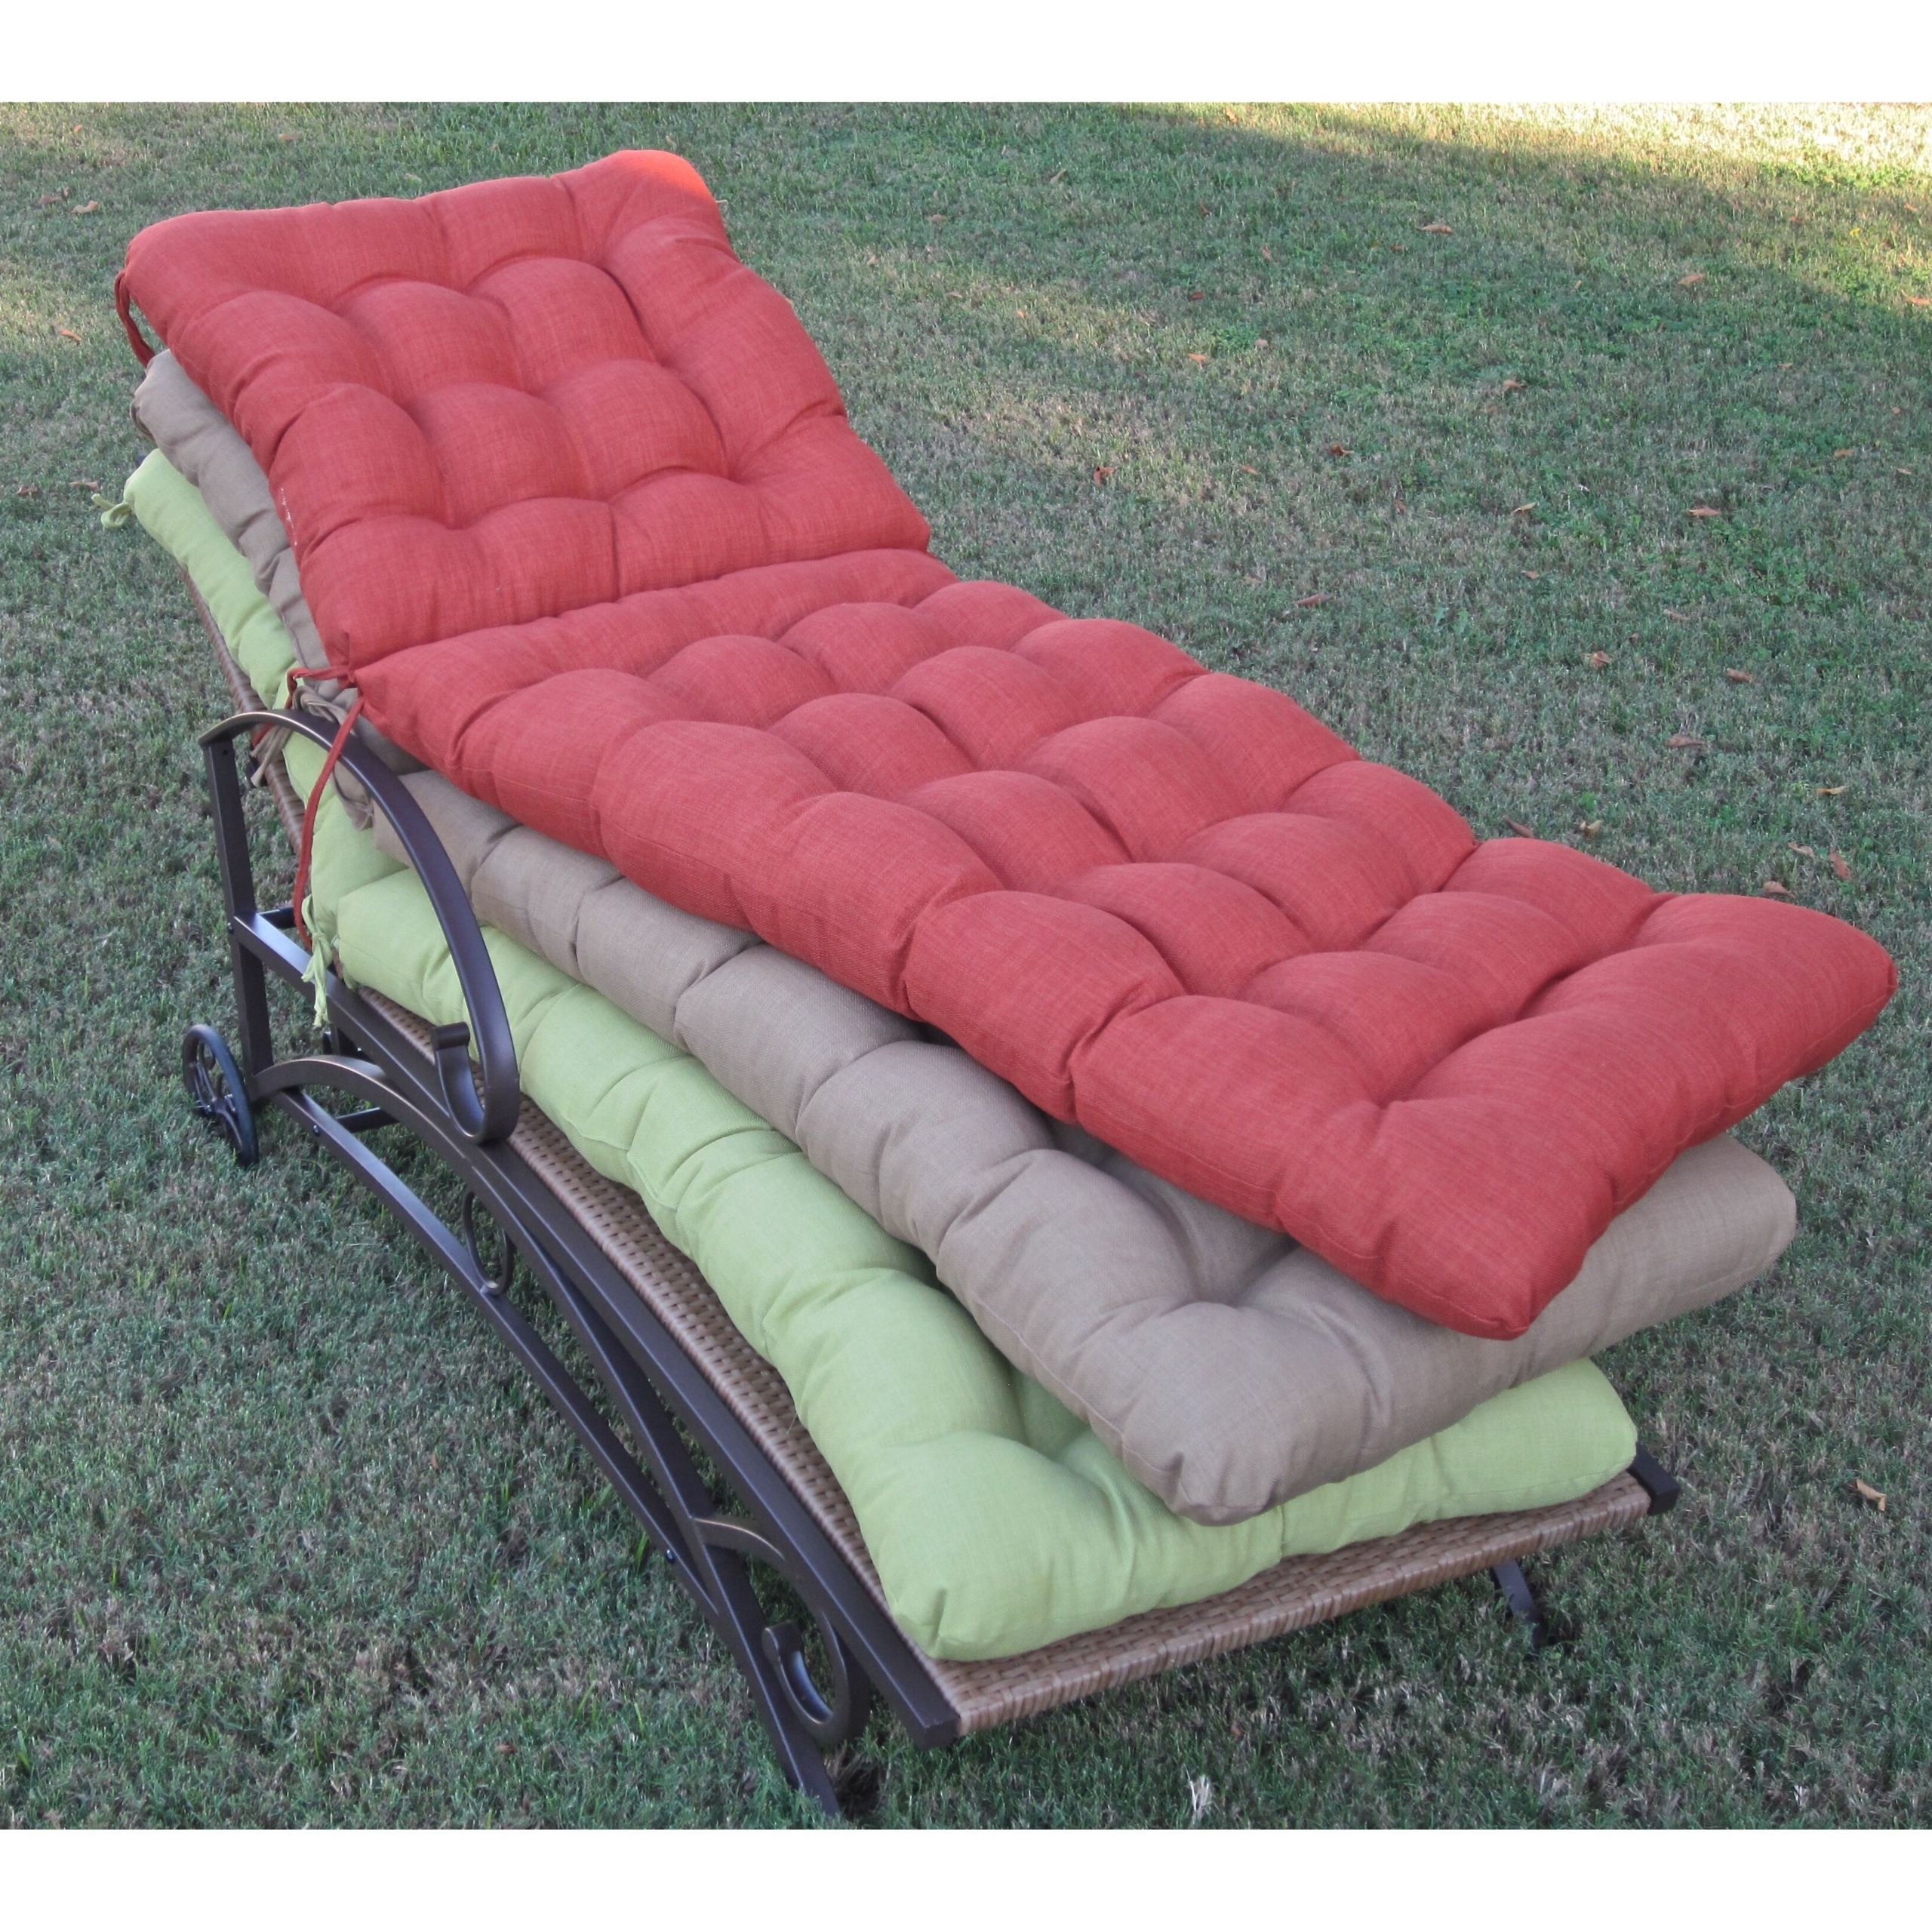 oversized chaise lounge cushions